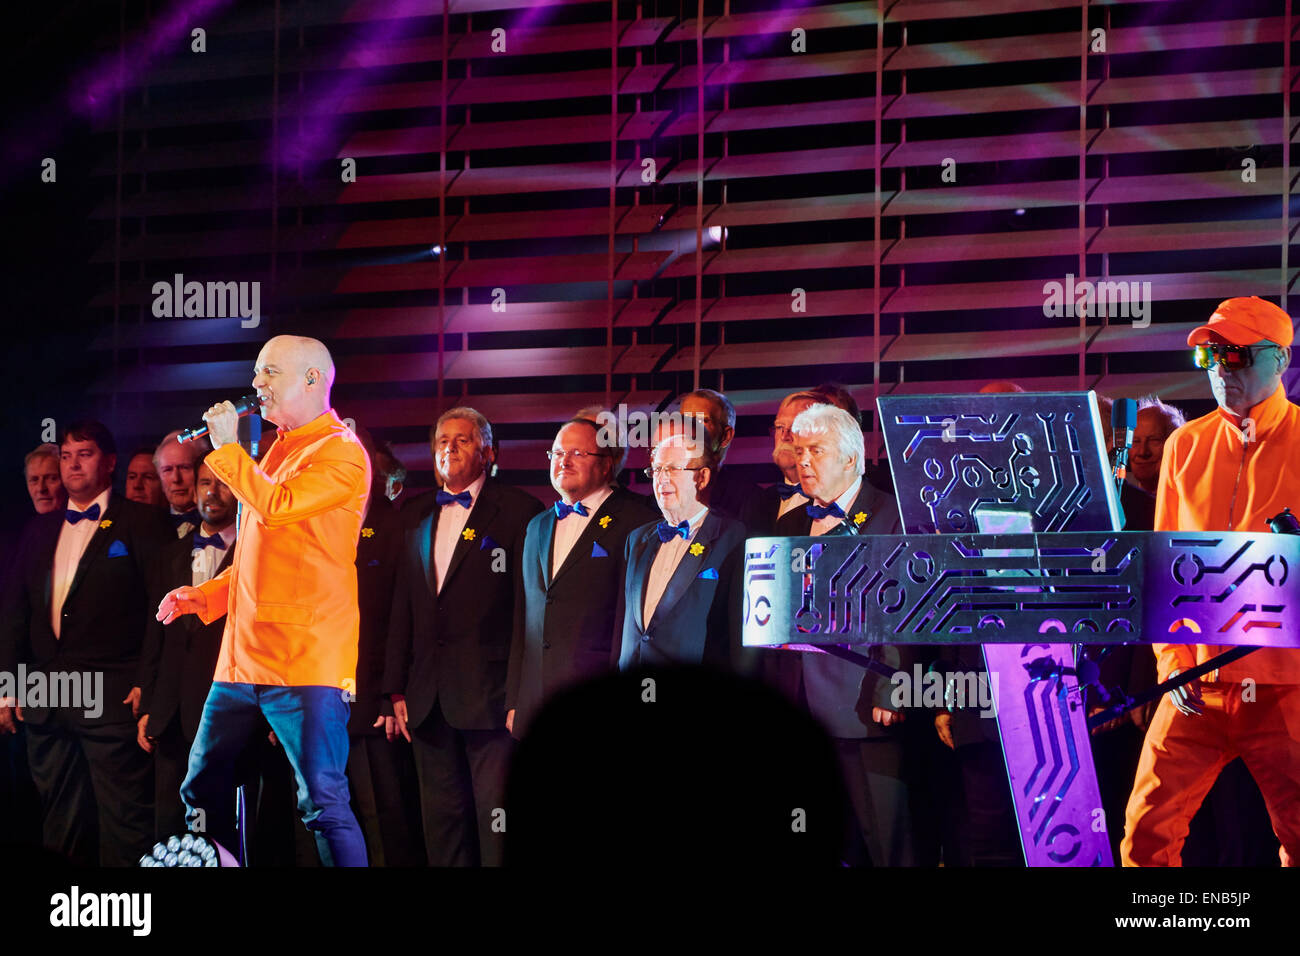 Pet Shop Boys at Festival No.6, Portmeirion, Wales. UK - Stock Image